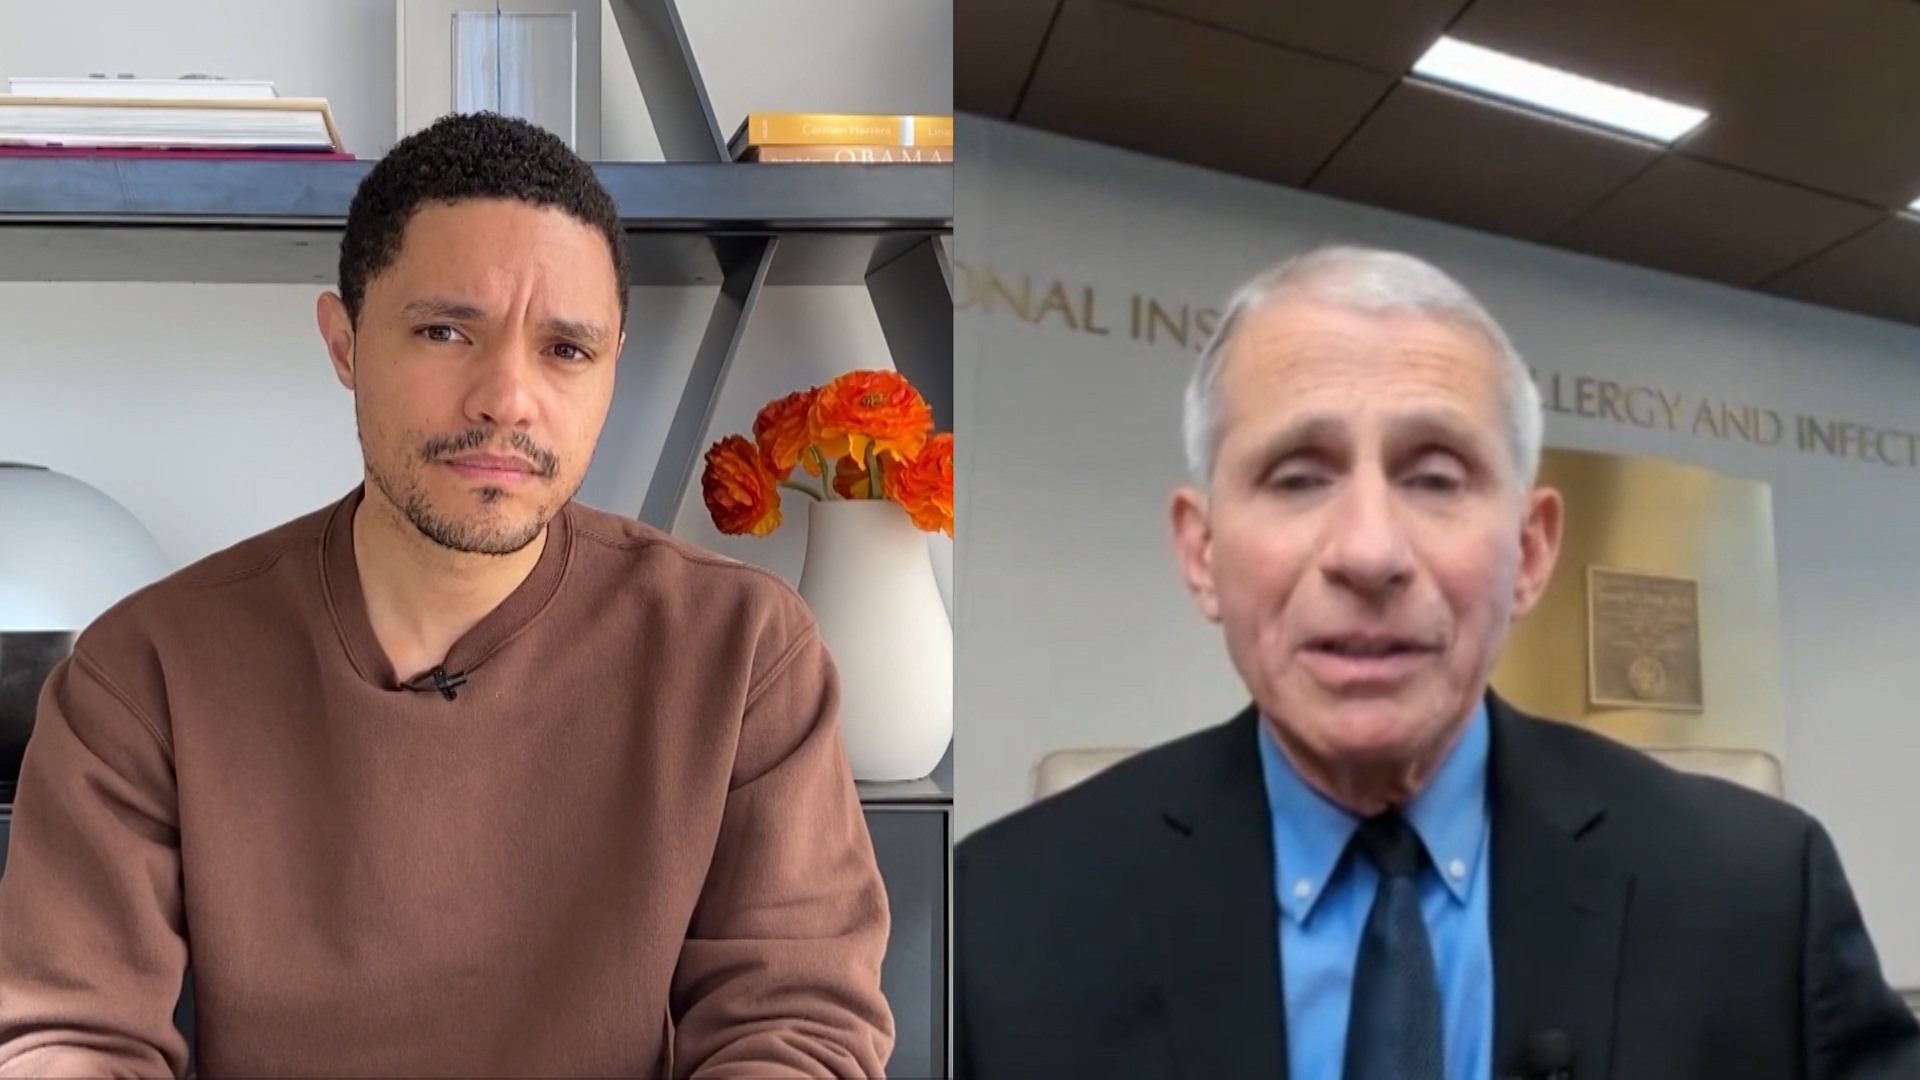 March 26, 2020 - Dr. Anthony Fauci